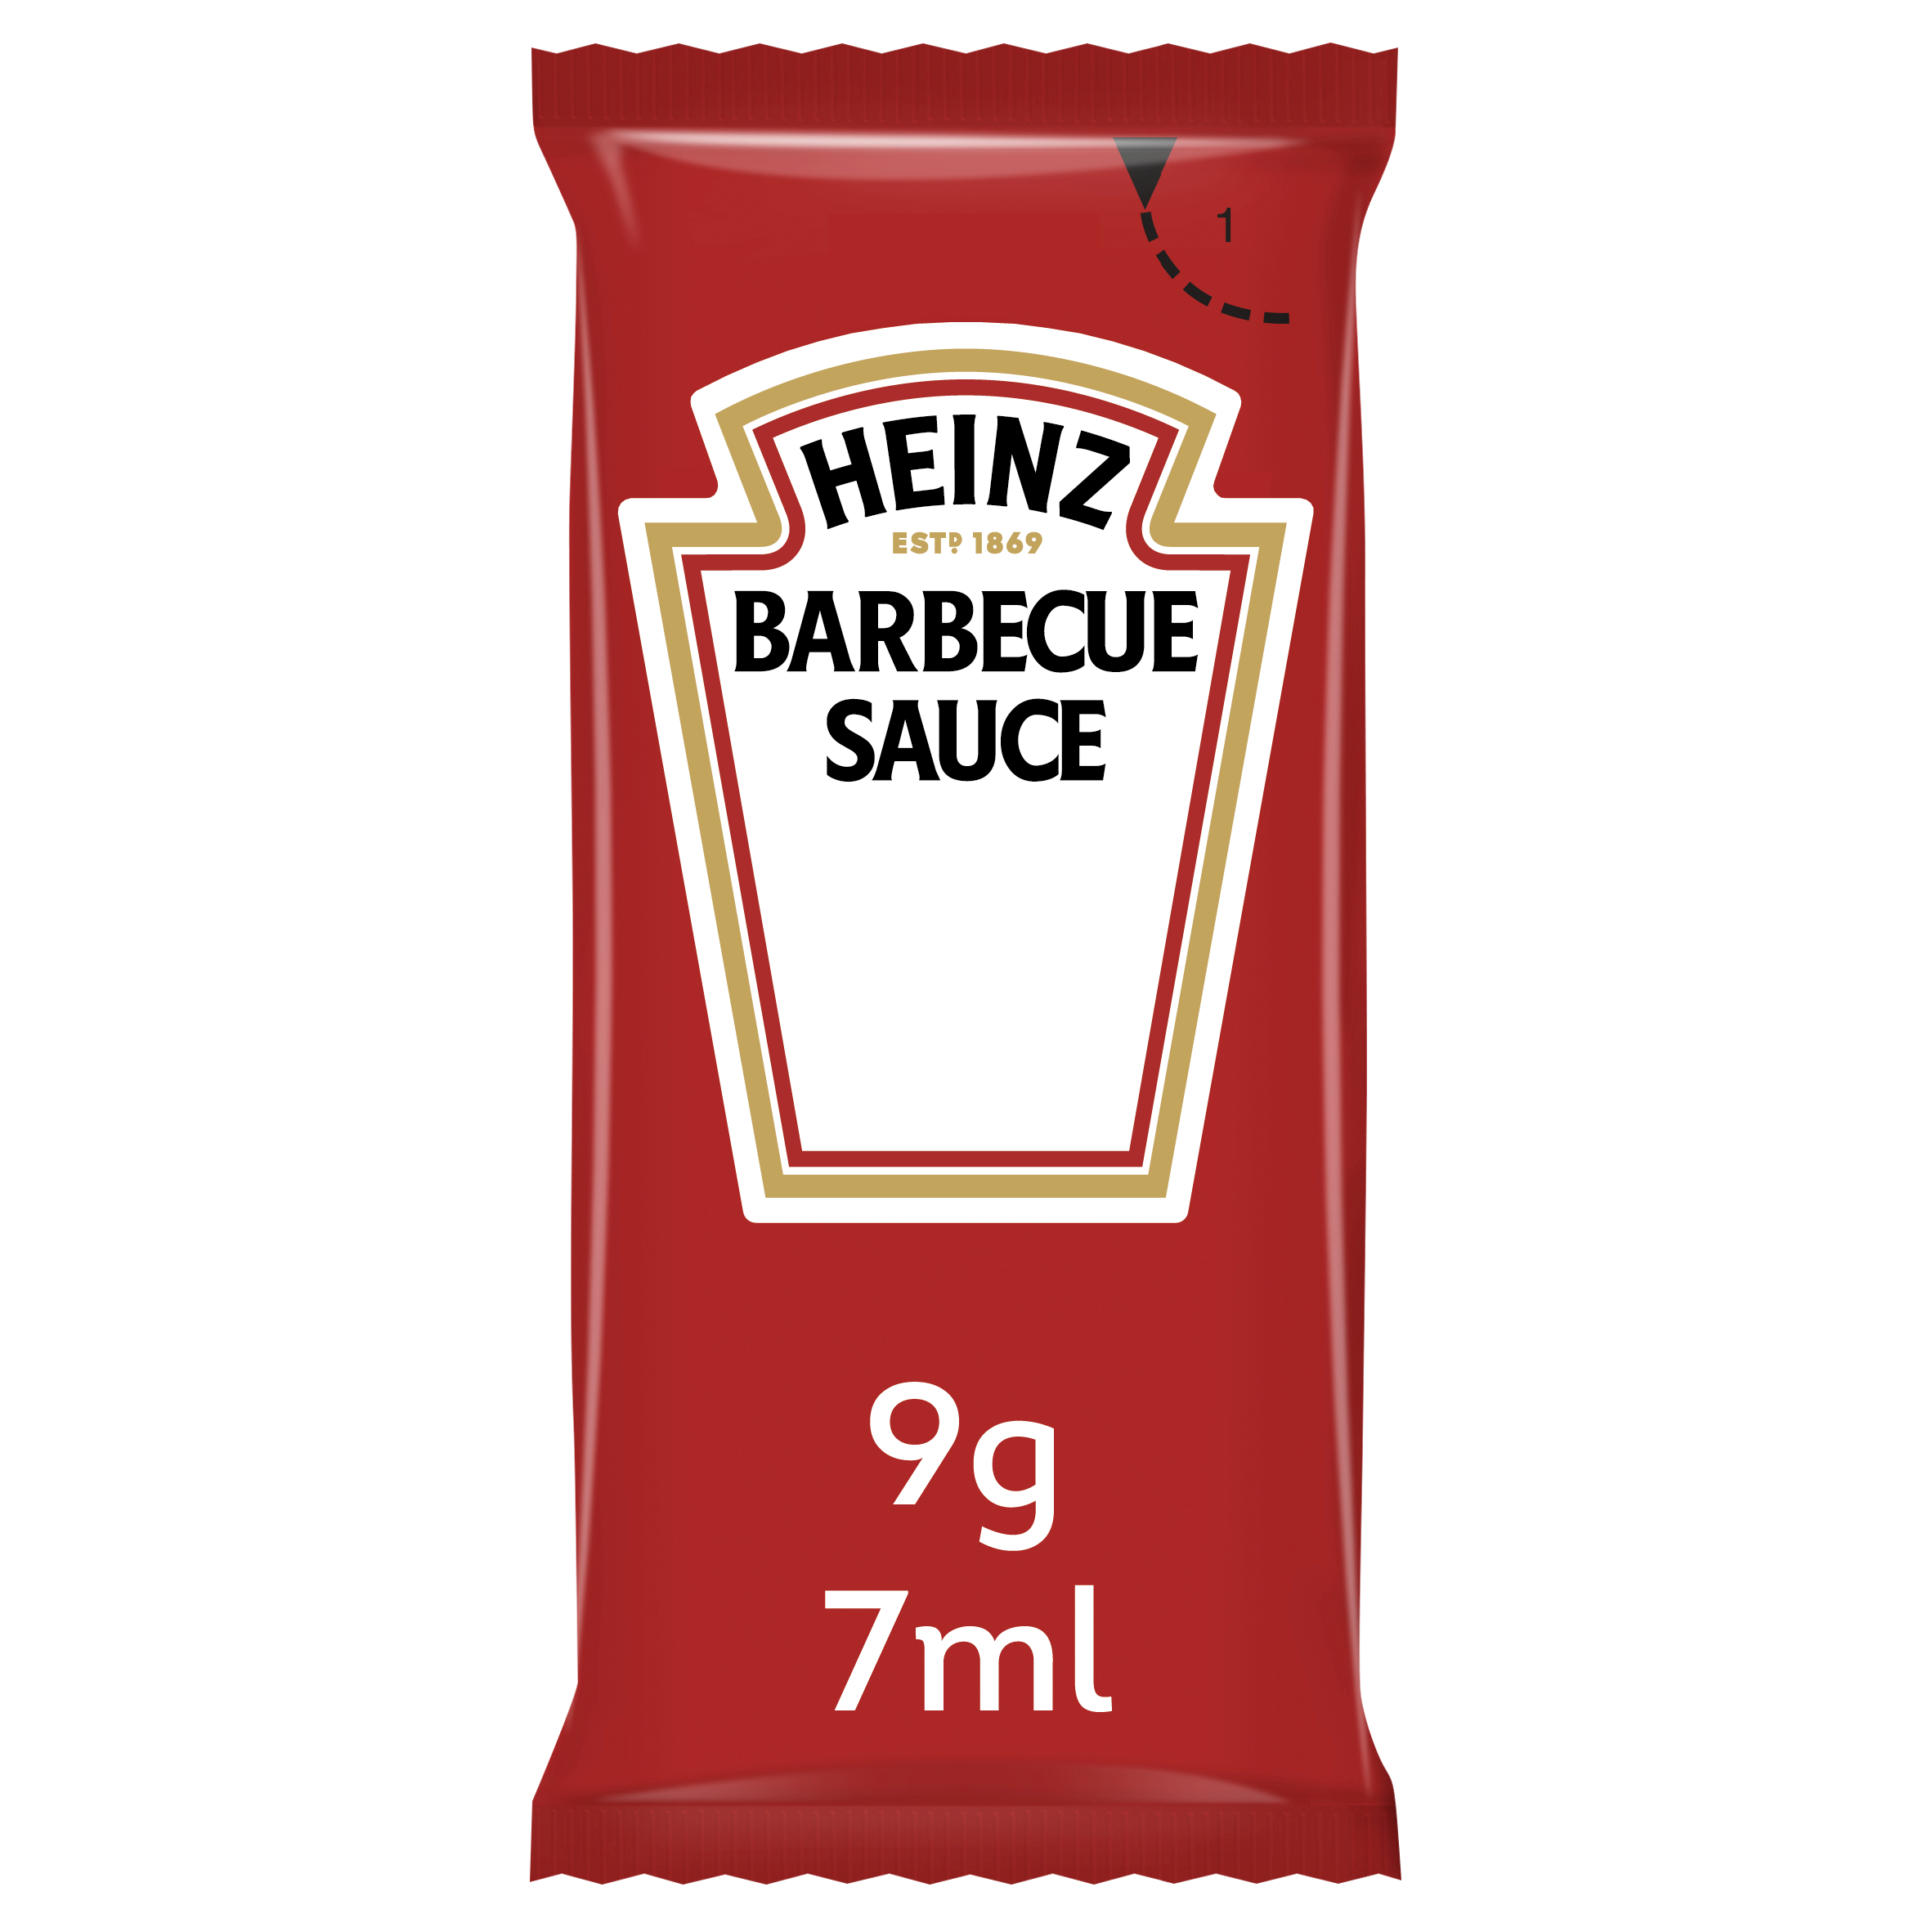 Heinz Sauce Barbecue 7ml Sachet